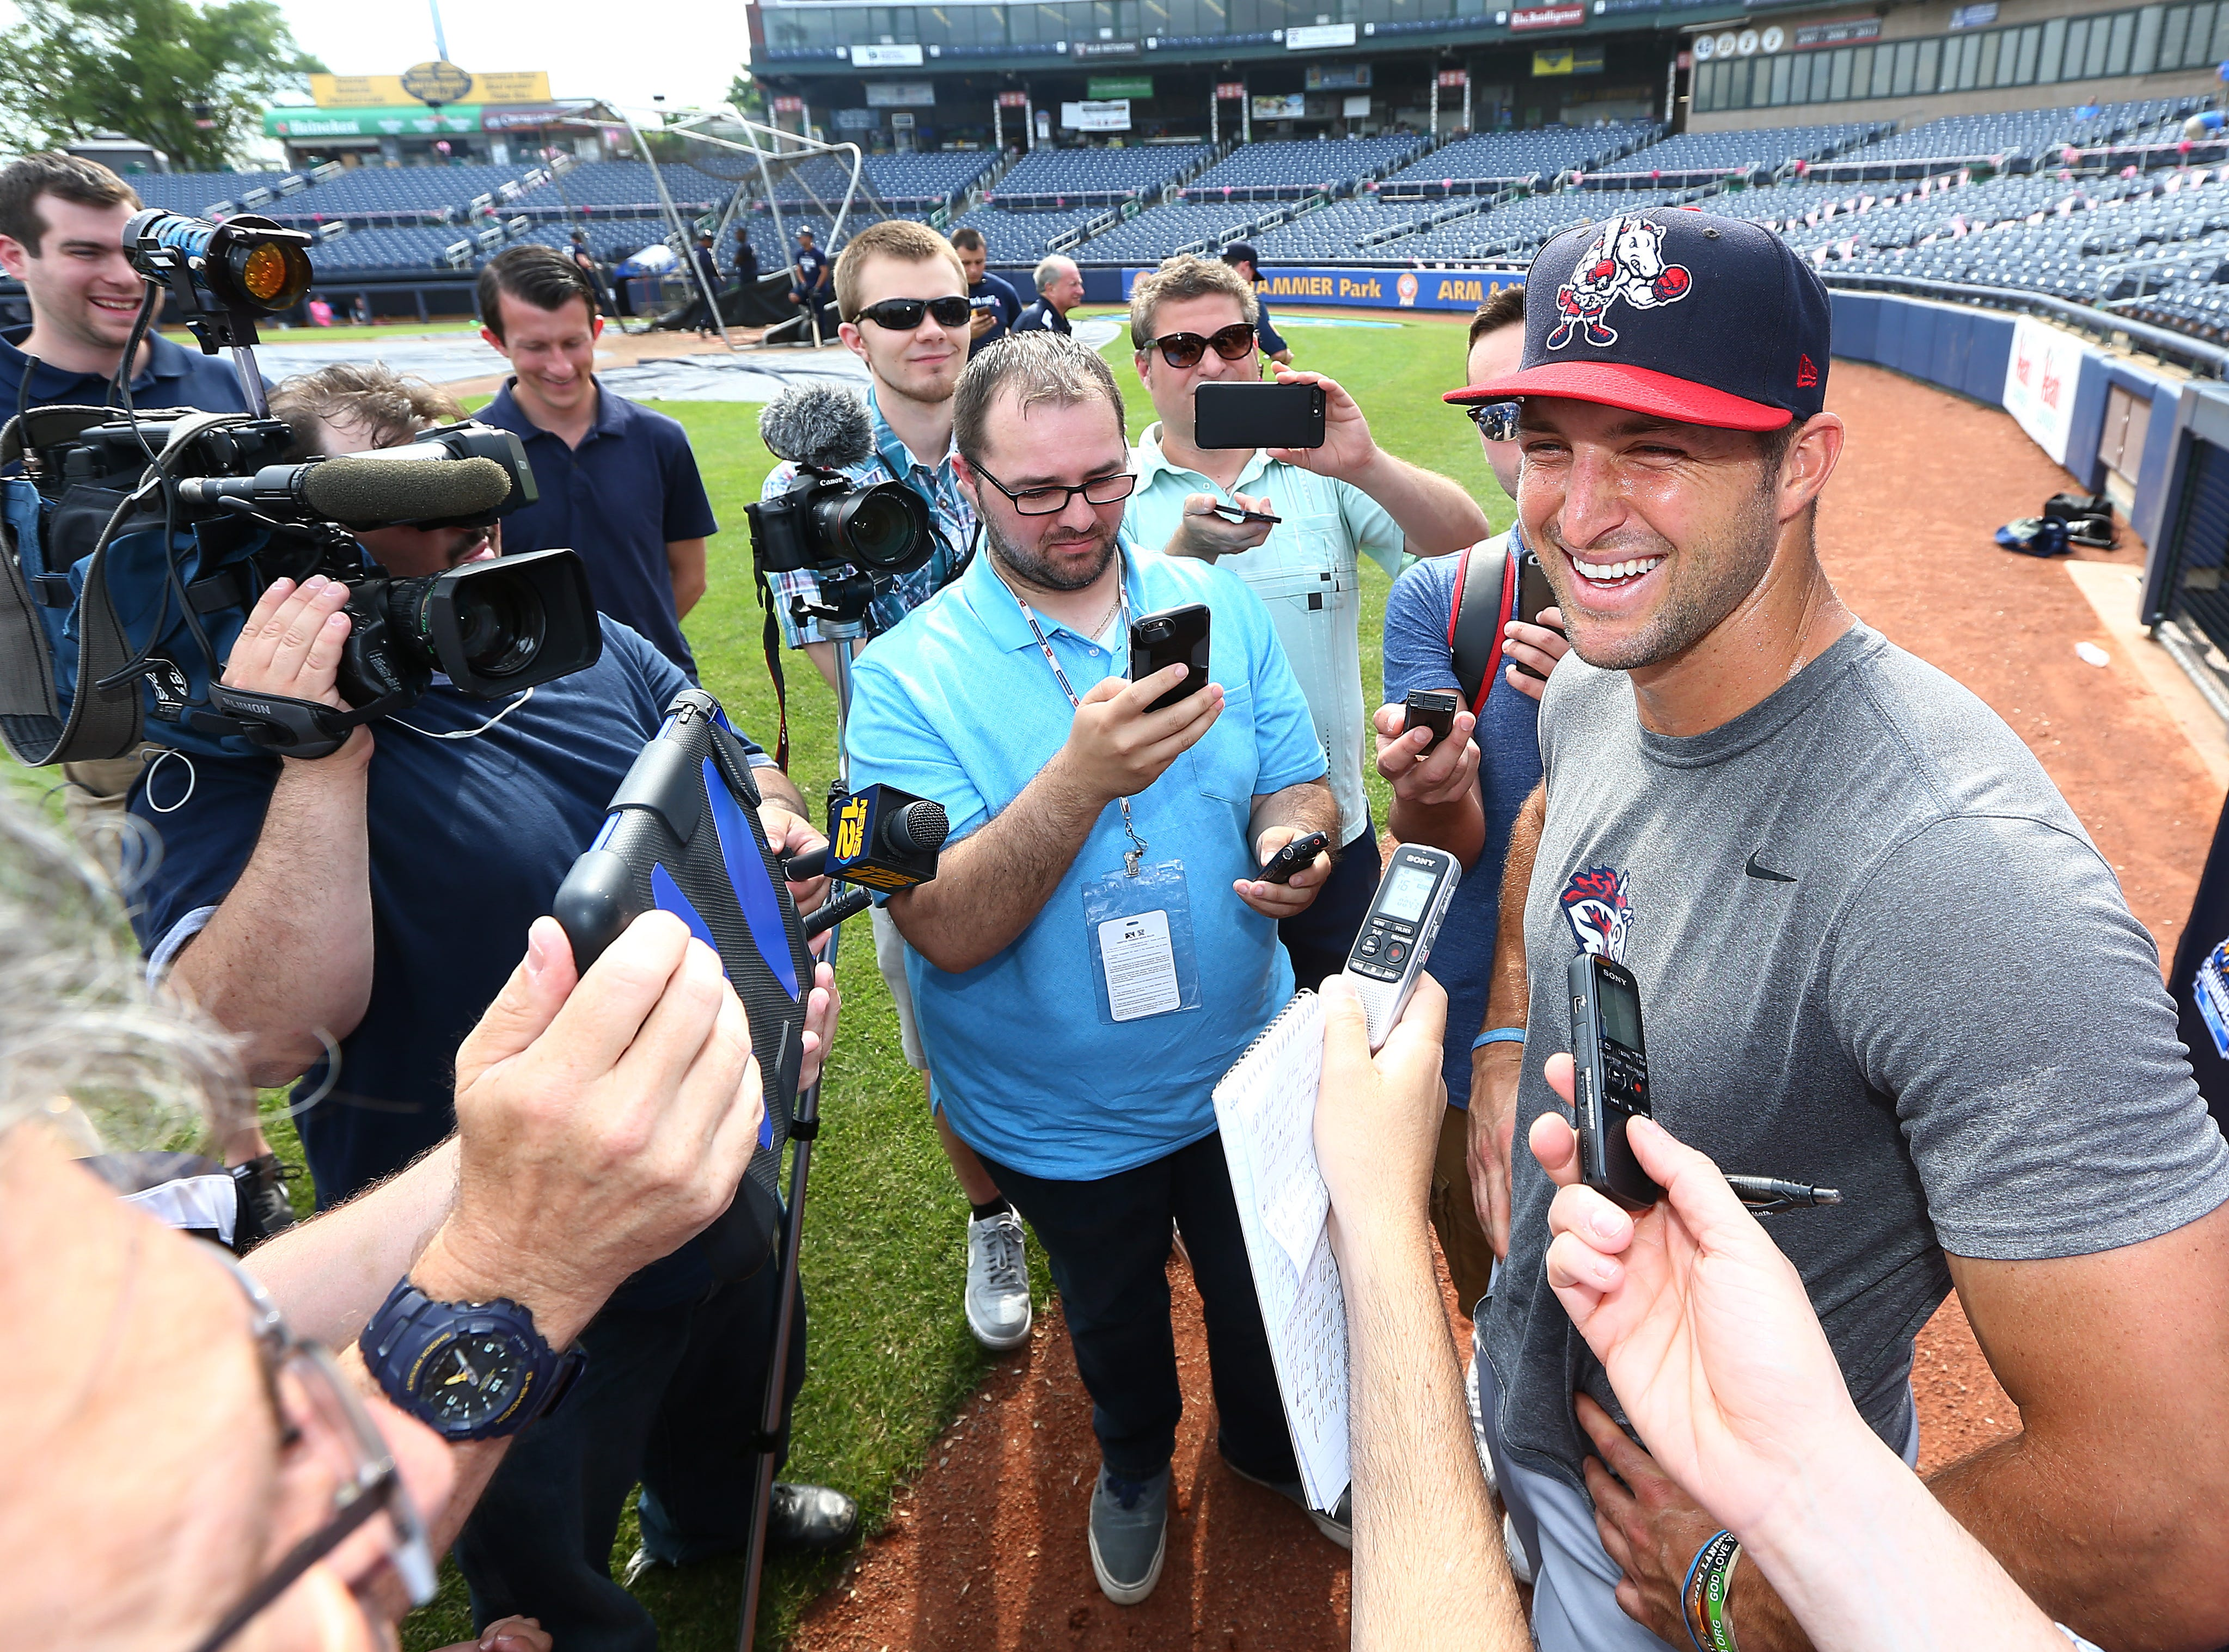 Outfielder Tim Tebow addressed the media in Trenton on Friday afternoon before he and the Mets Double-A affiliate Binghamton Rumble Ponies take on the Thunder in a three-game series at Arm & Hammer Park. June 7, 2018. Trenton, NJ